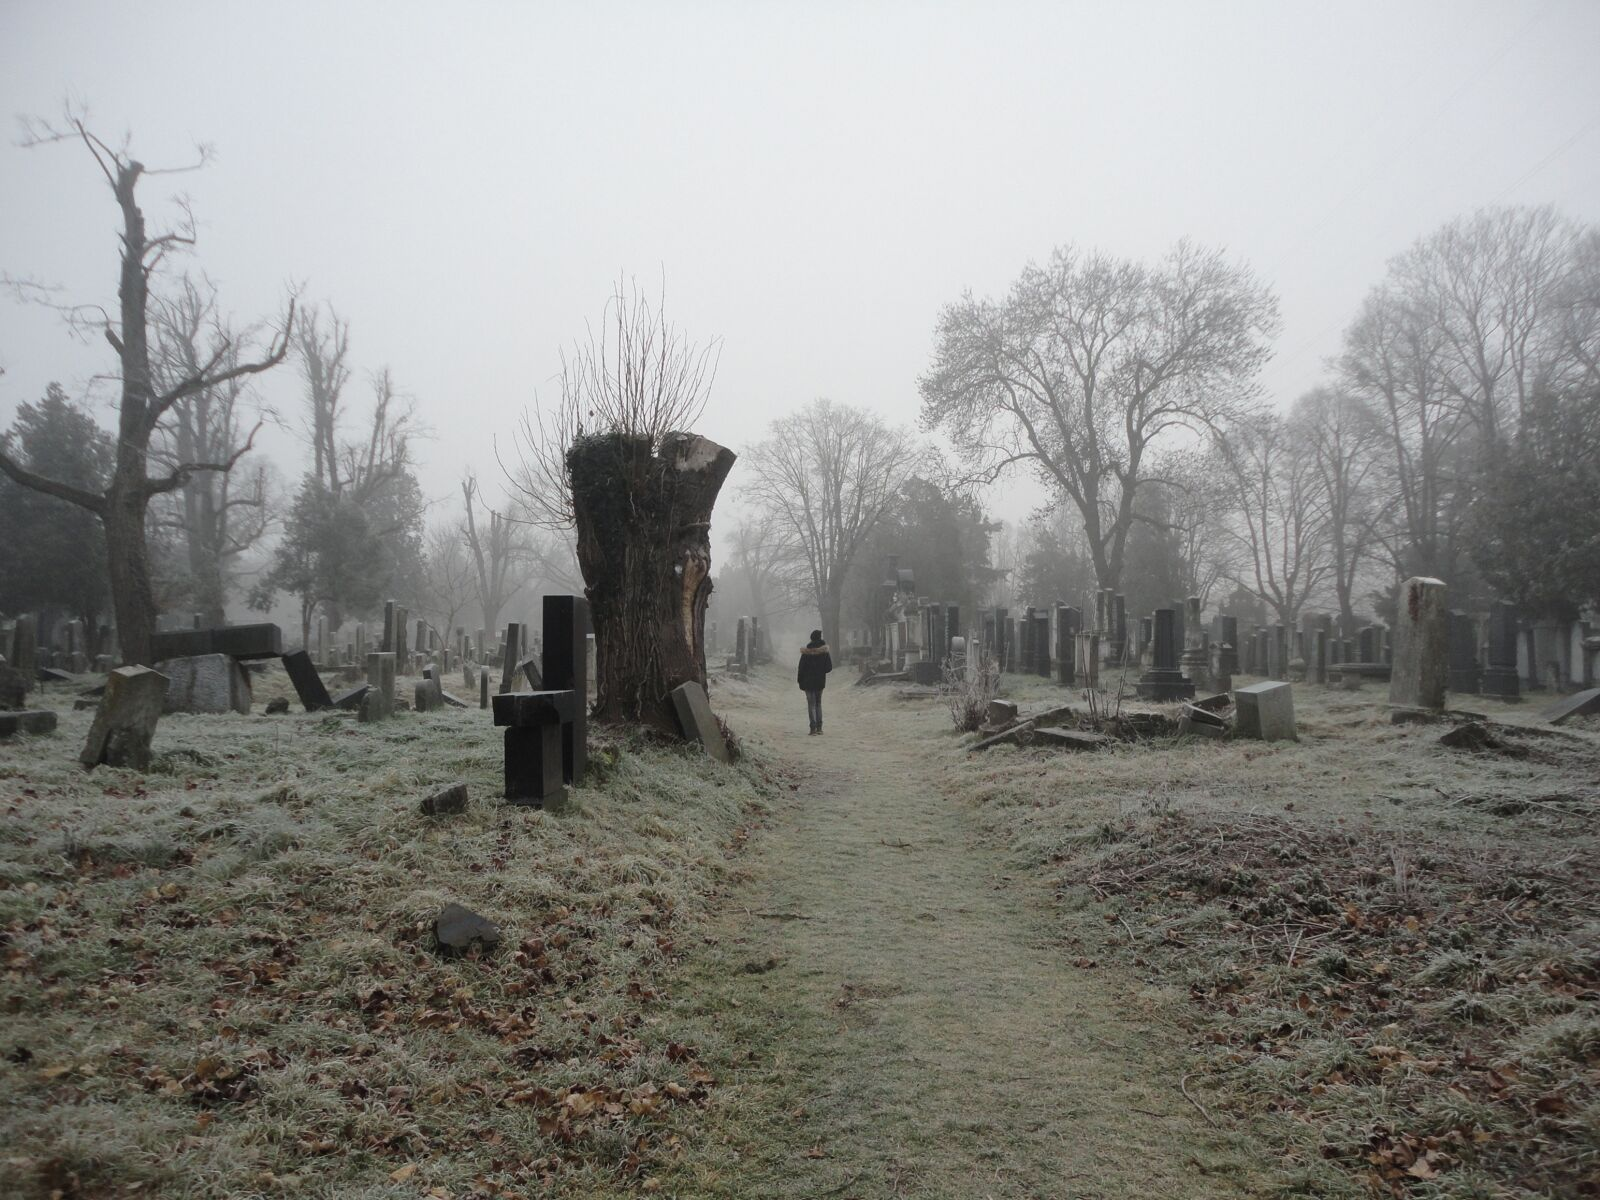 """Sony DSC-W350 sample photo. """"Cemetery, haunted woods, autumn"""" photography"""